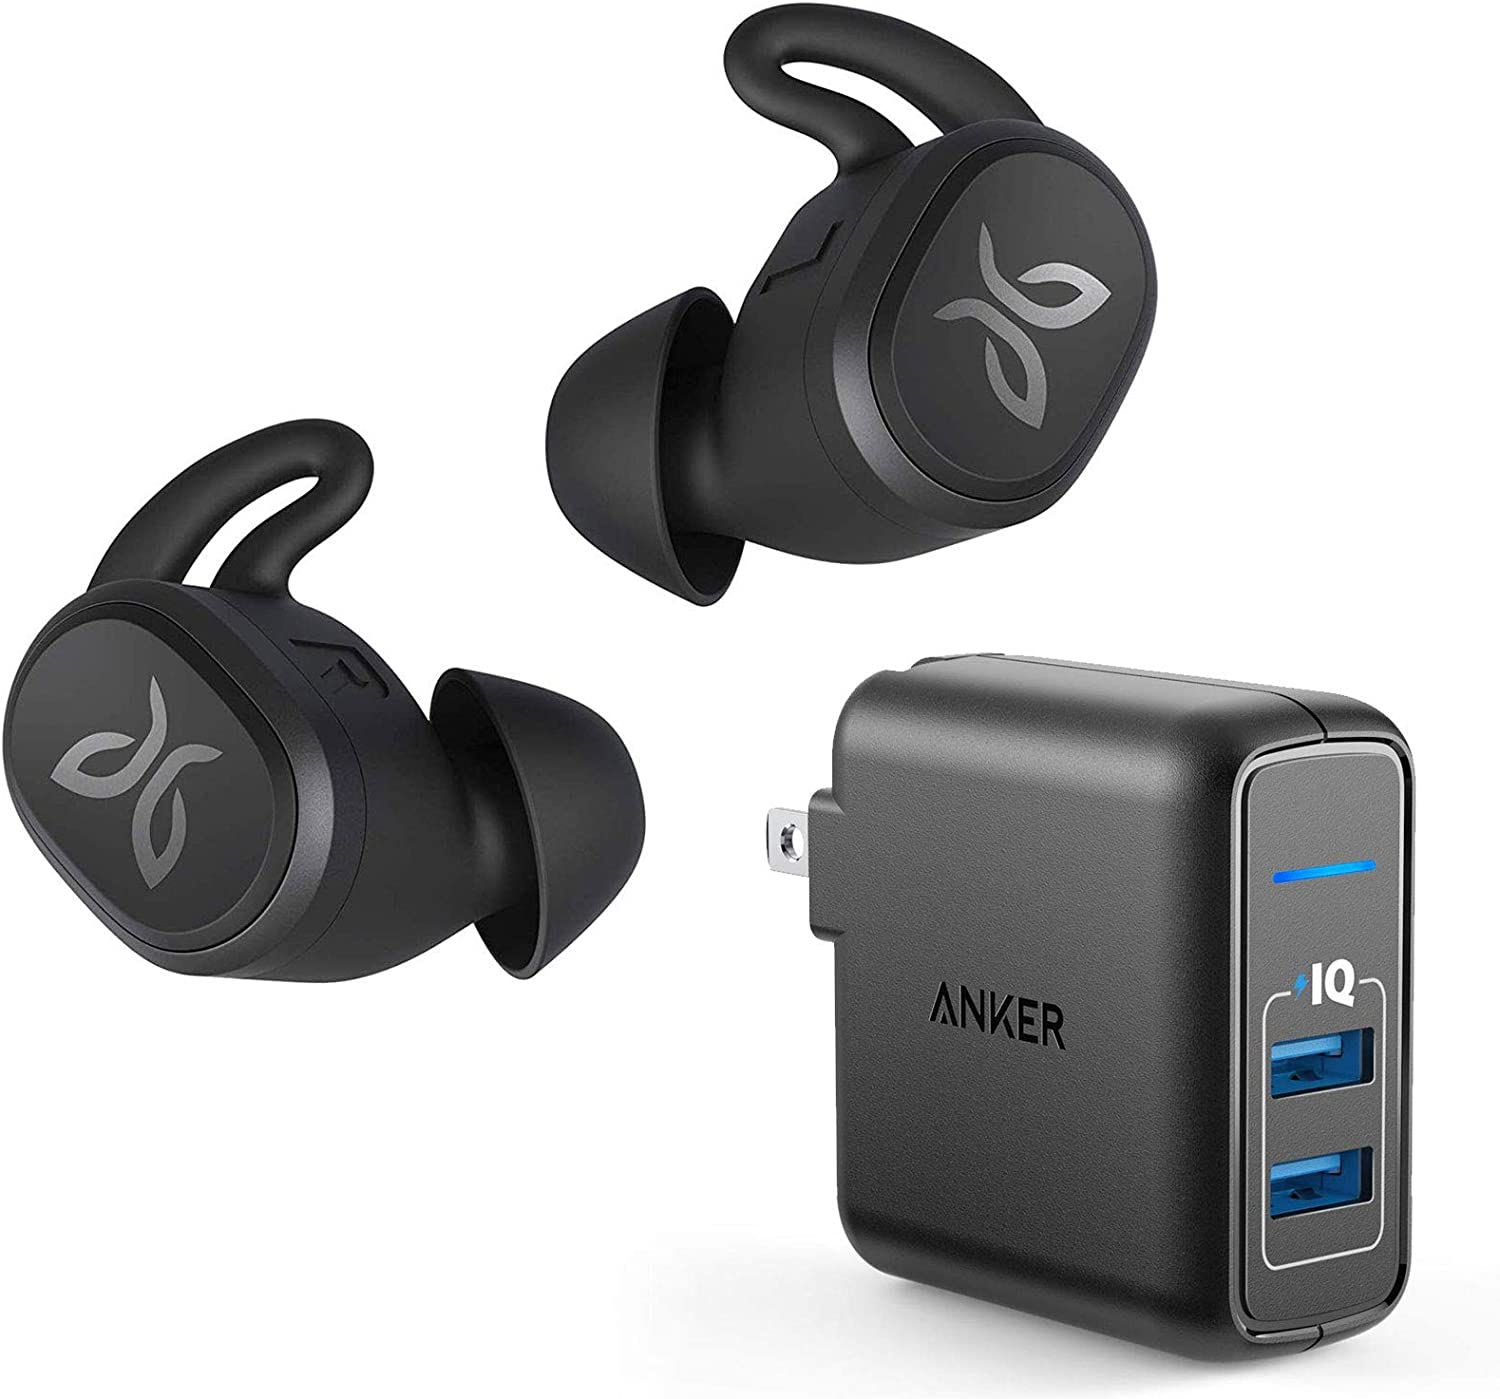 Jaybird Vista Truly Wireless Bluetooth in-Ear Sport Headphones Bundle with Anker 2-Port Wall Charger – Black